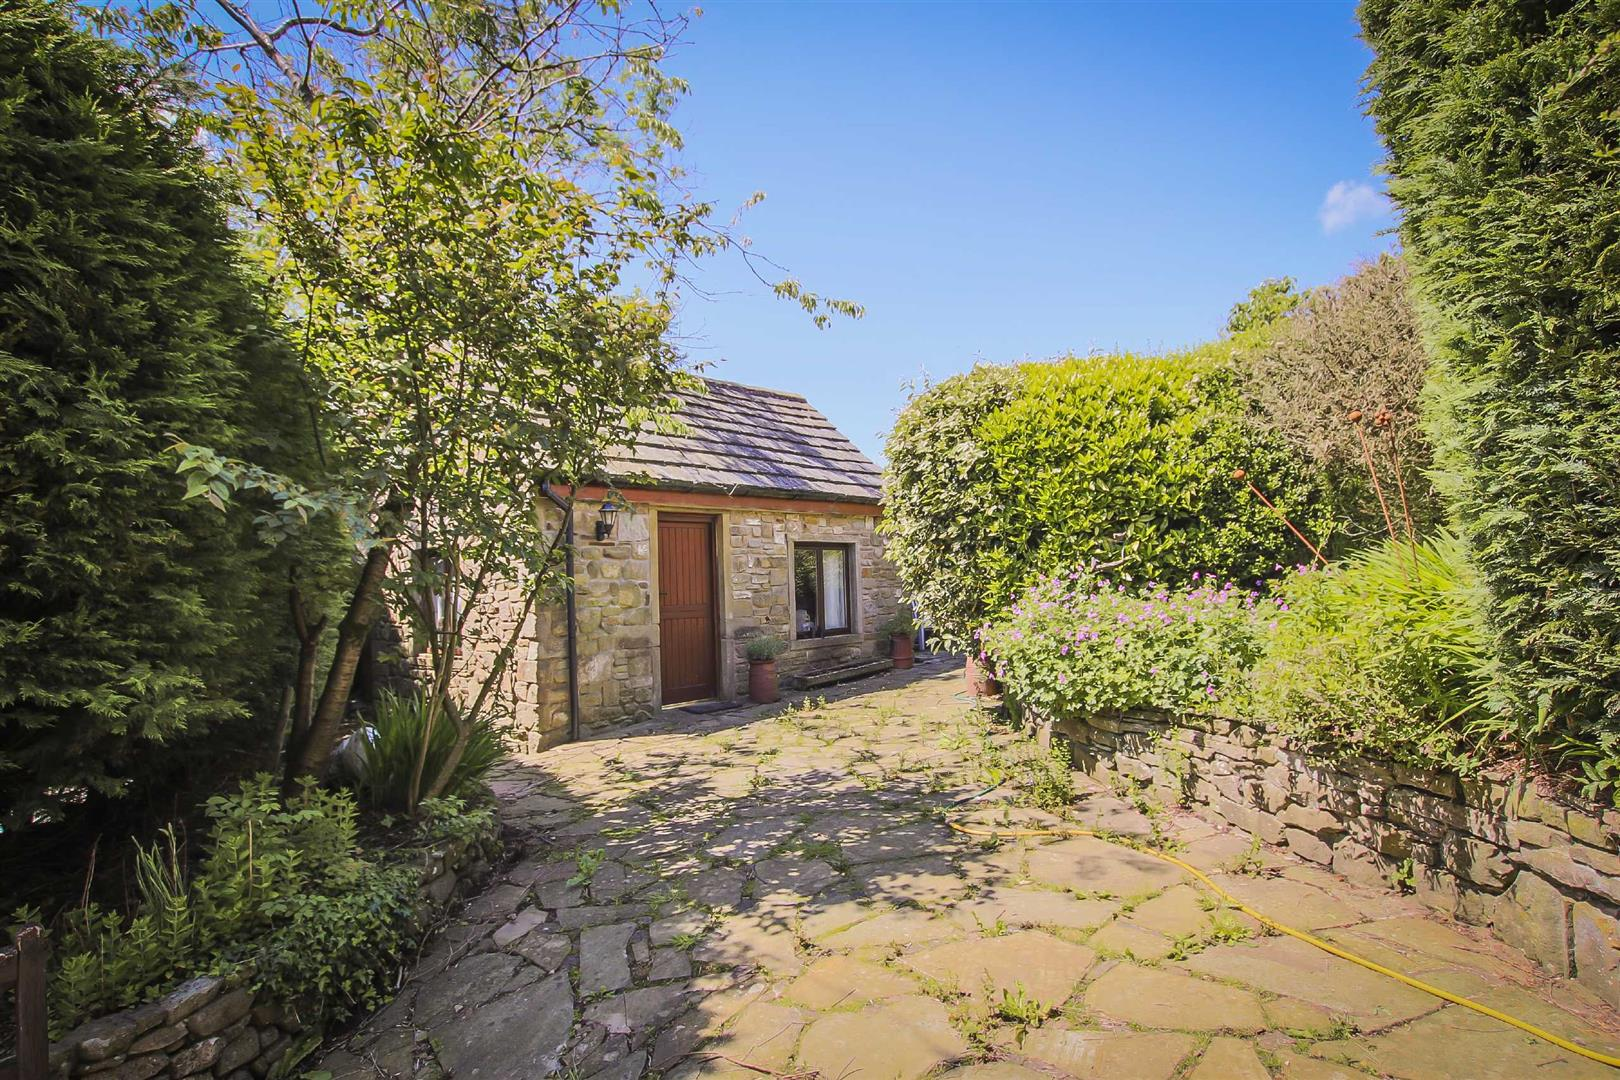 4 Bedroom Barn Conversion For Sale - Image 20